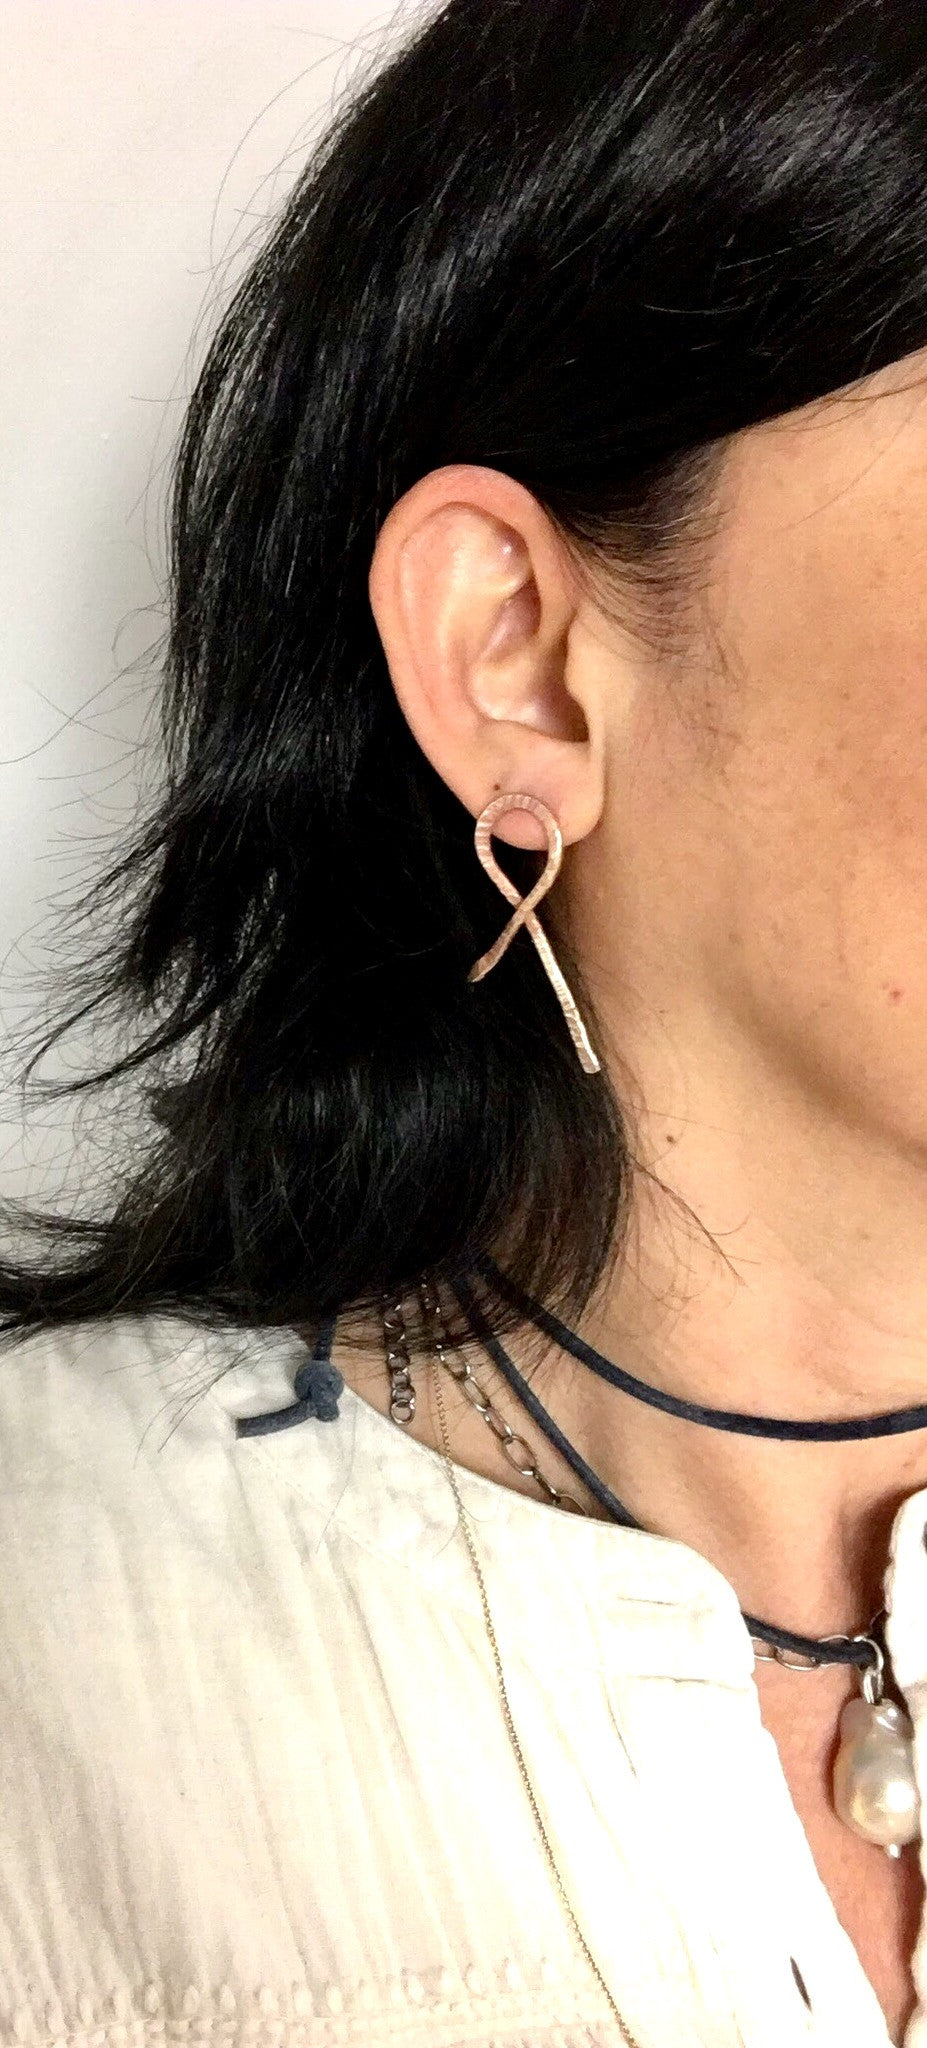 workshop / intro to working with metals + making HOOP or RIBBON EARRINGS